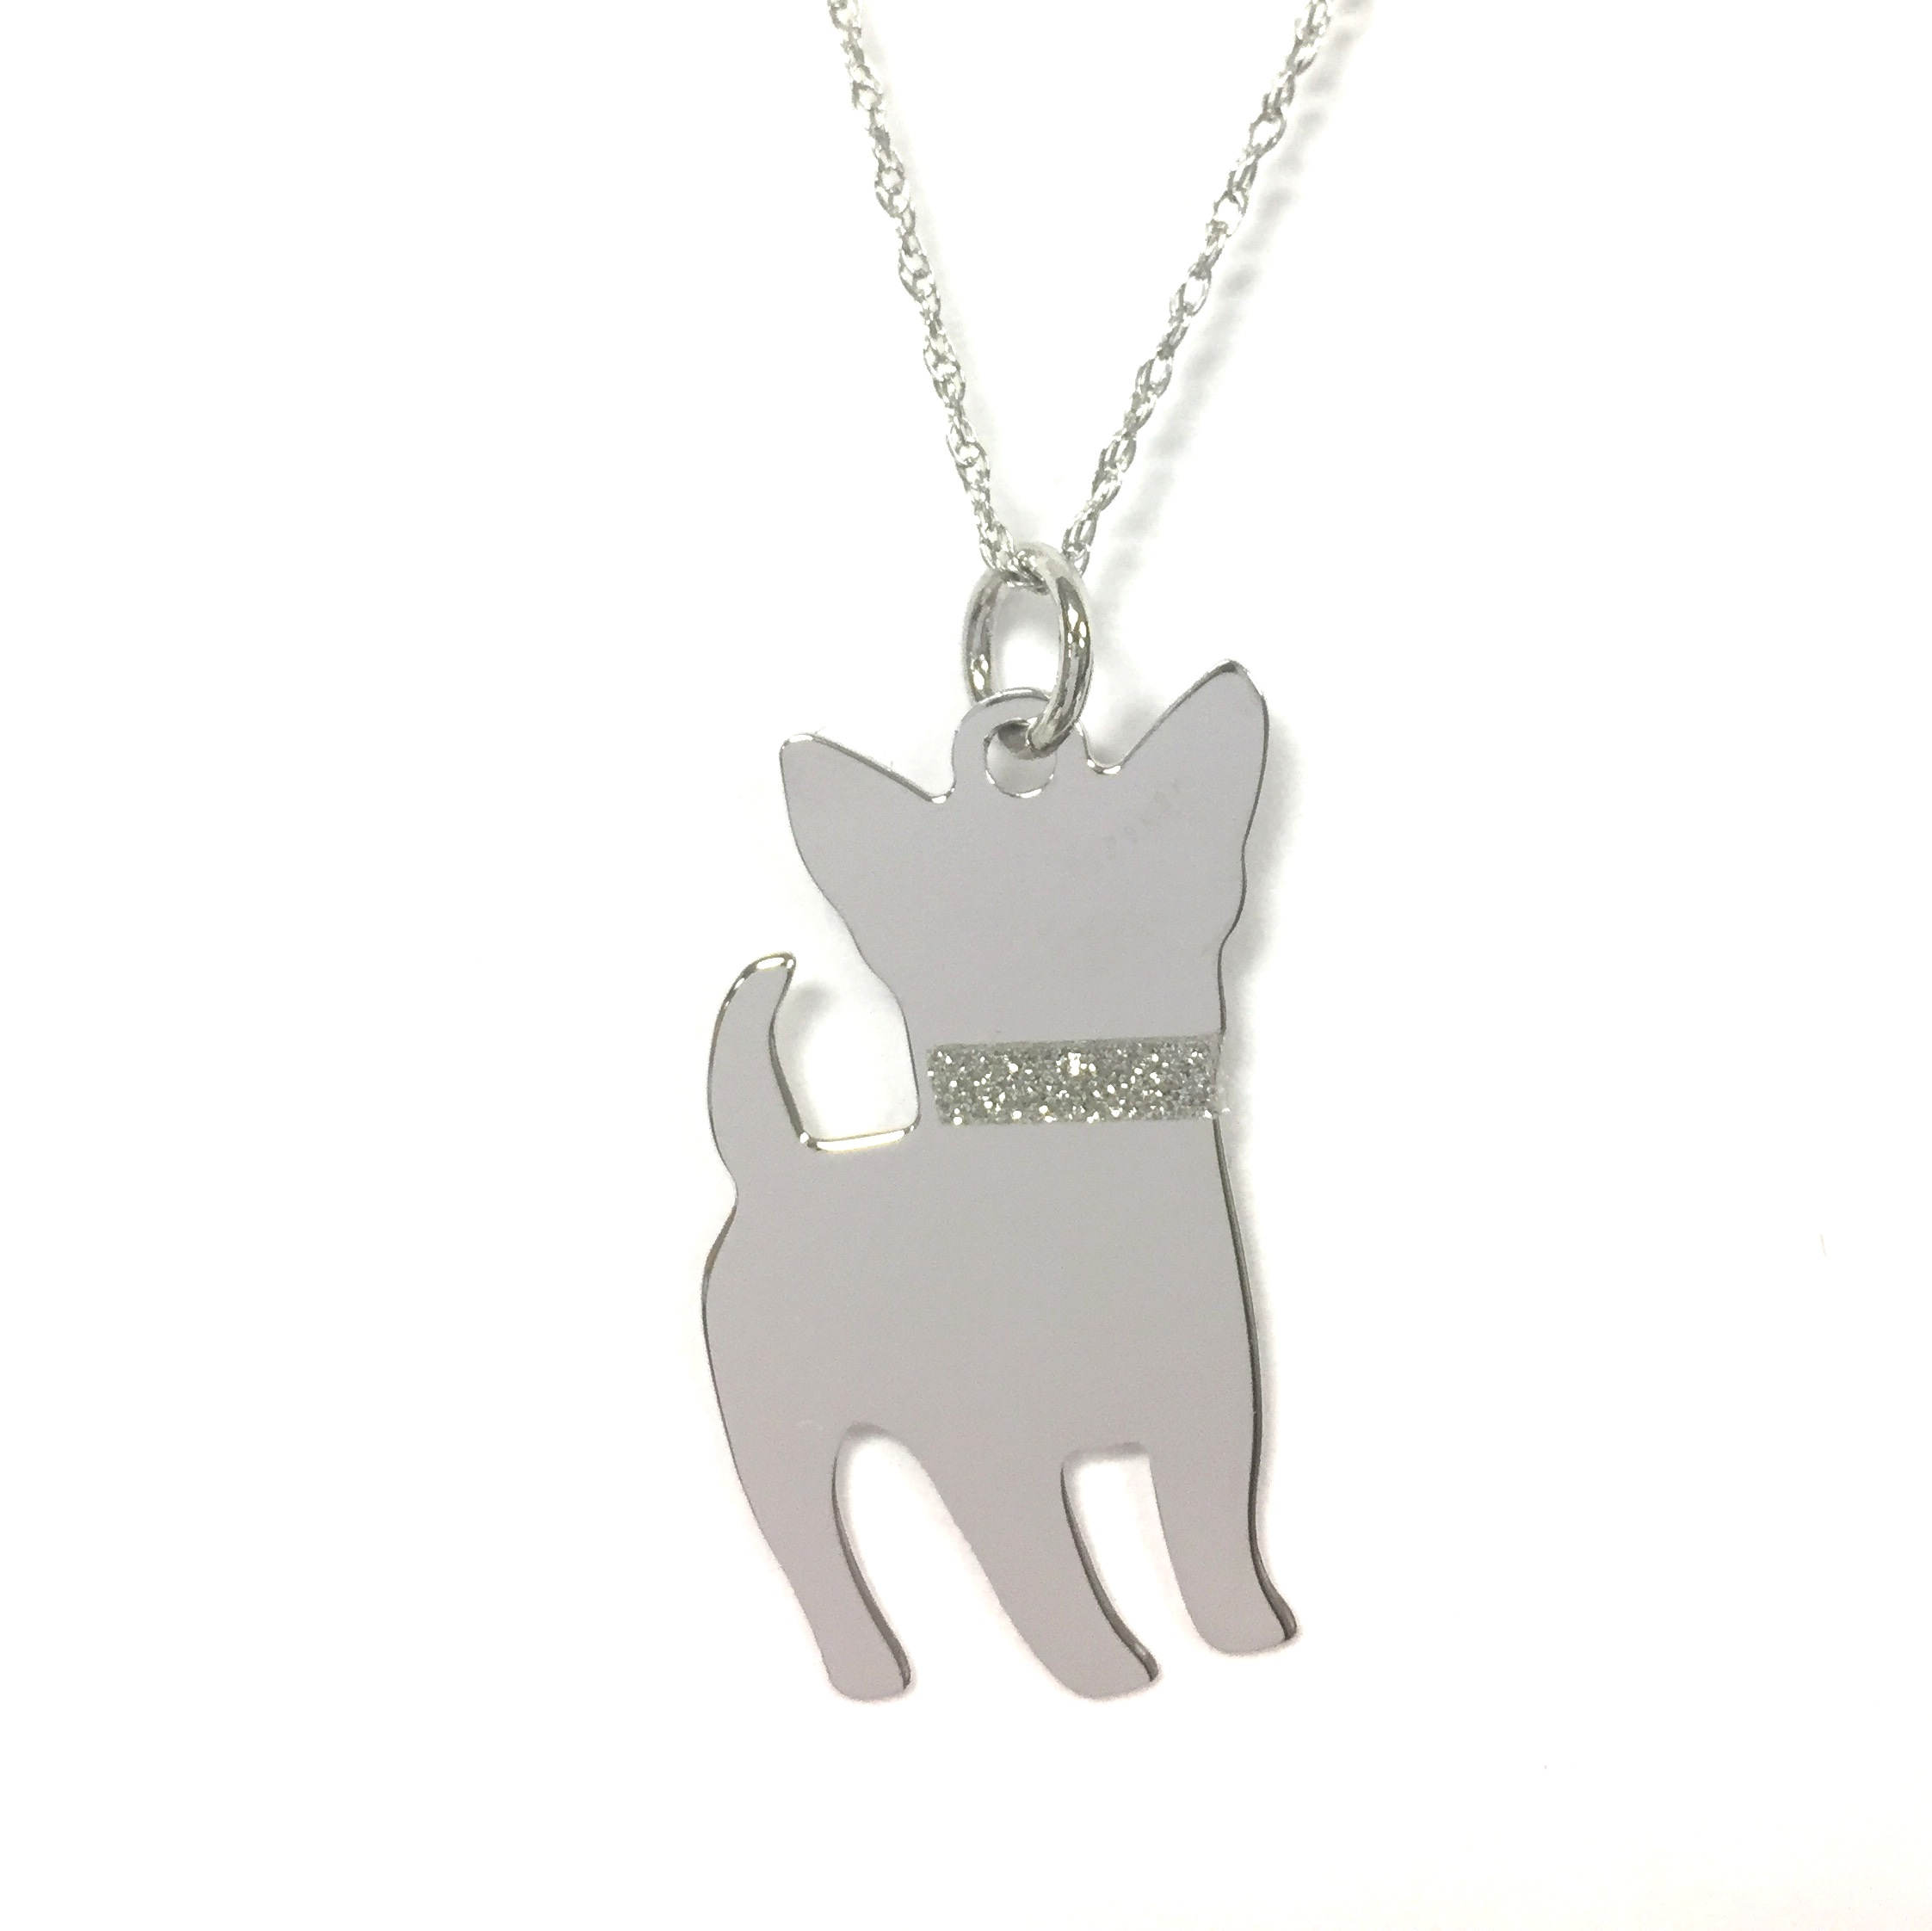 jewellery dog balloon necklaces necklace joma